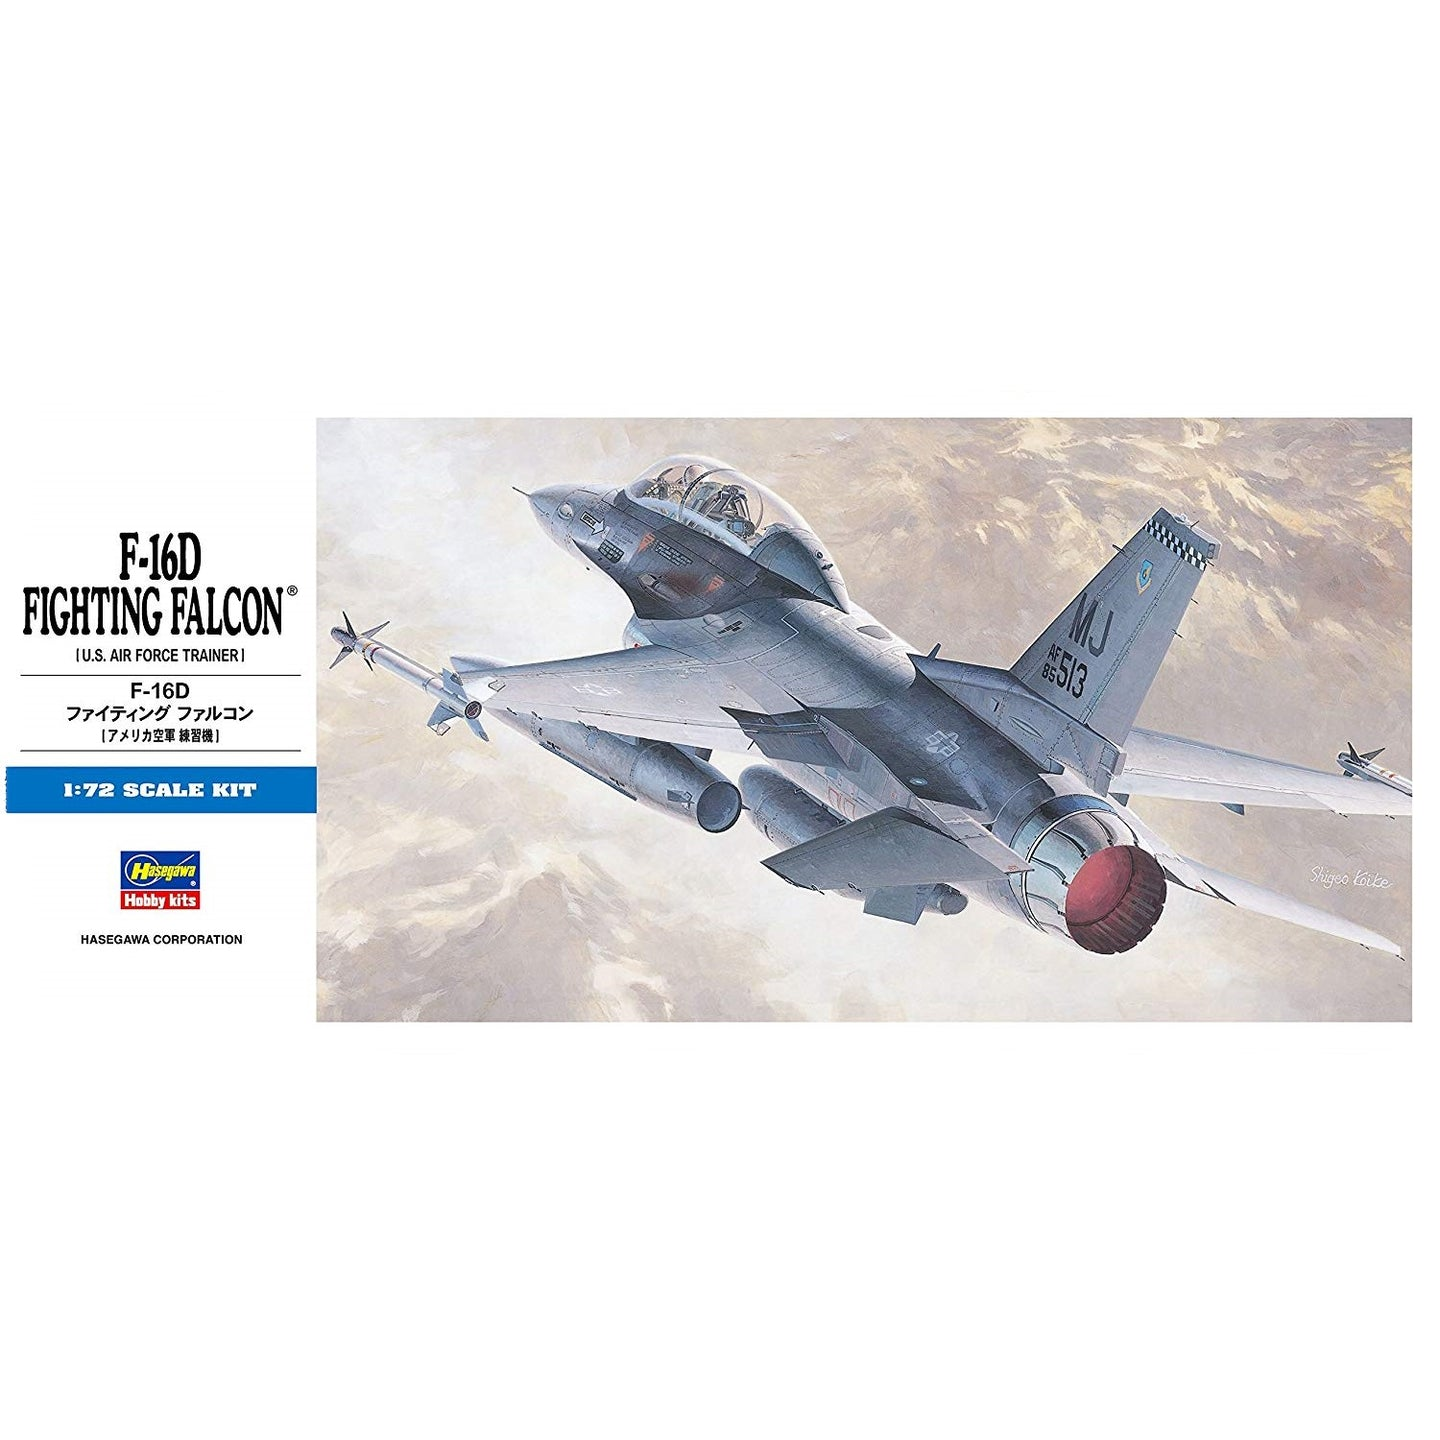 Hasegawa 1/72 US Air Force F-16D Fighting Falcon Trainer 00445